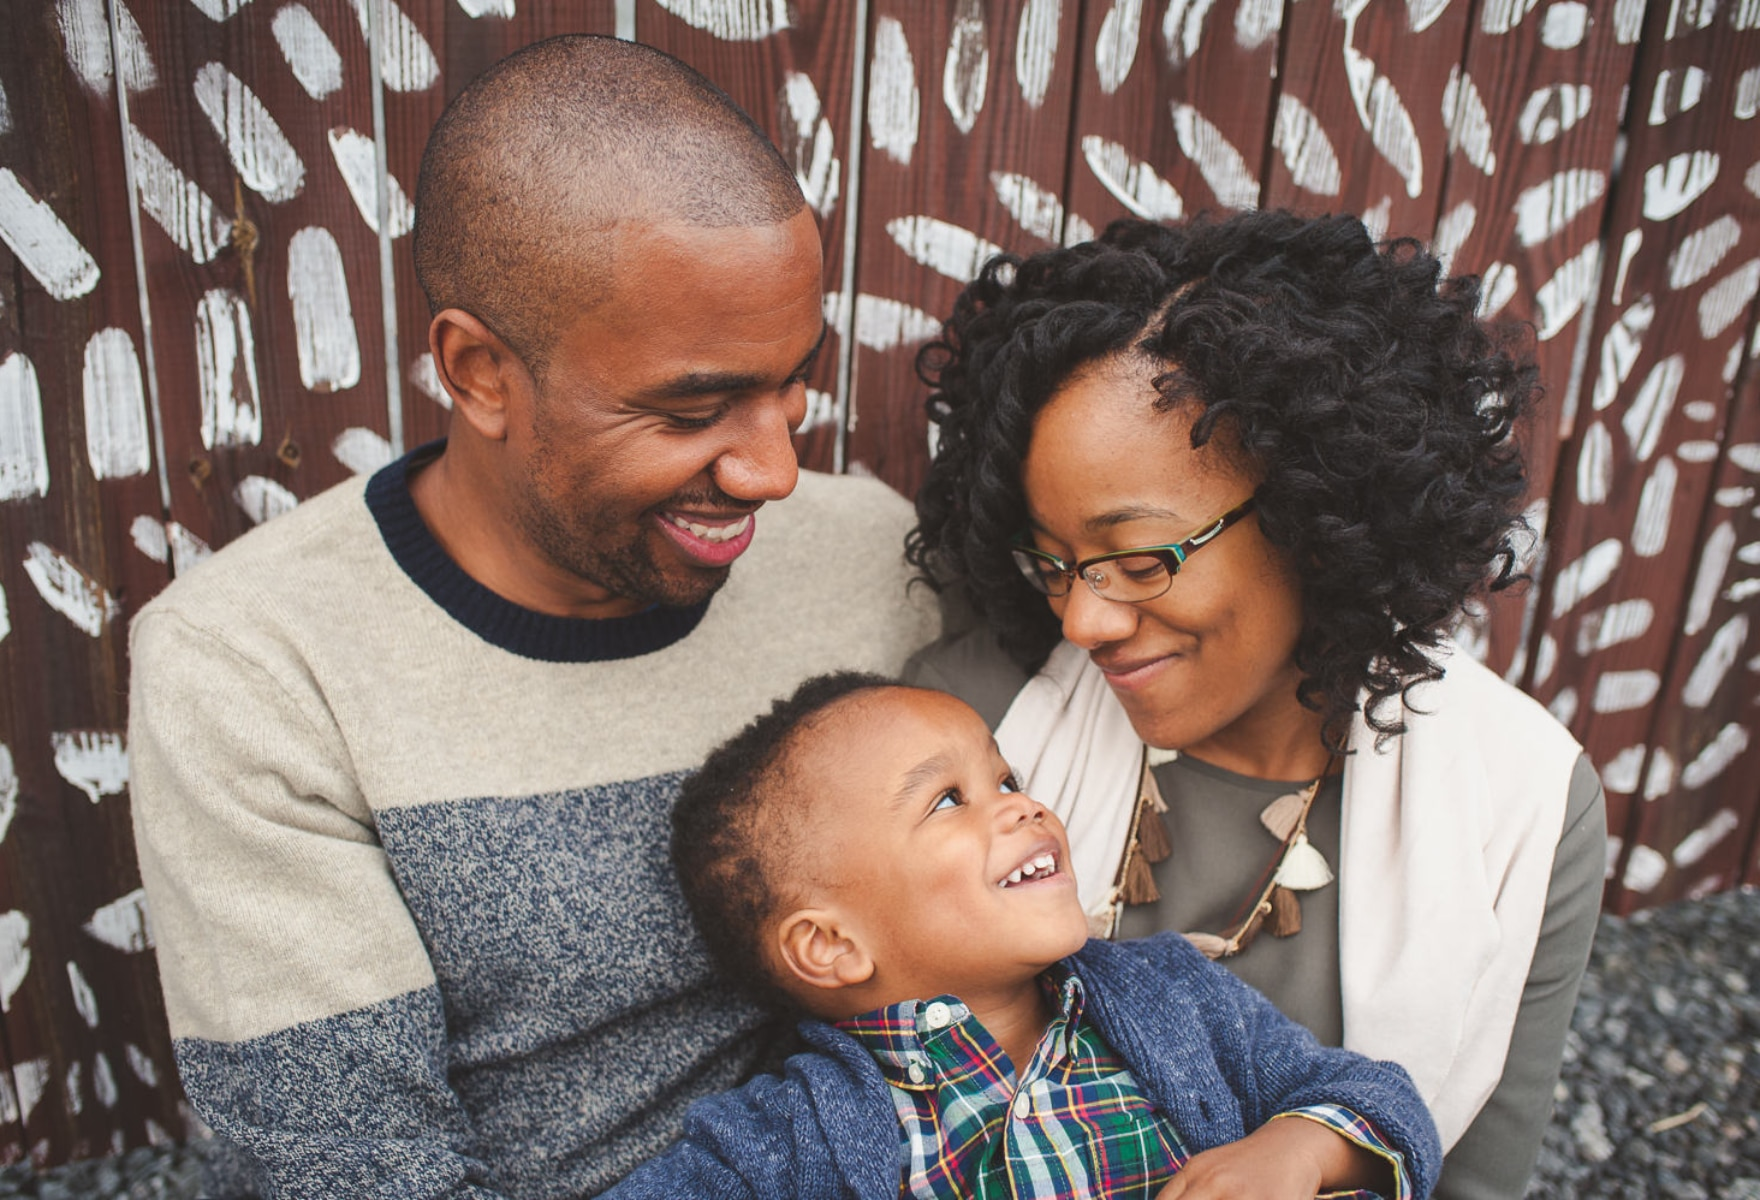 portrait of black family of 3 sitting together and smiling at each other